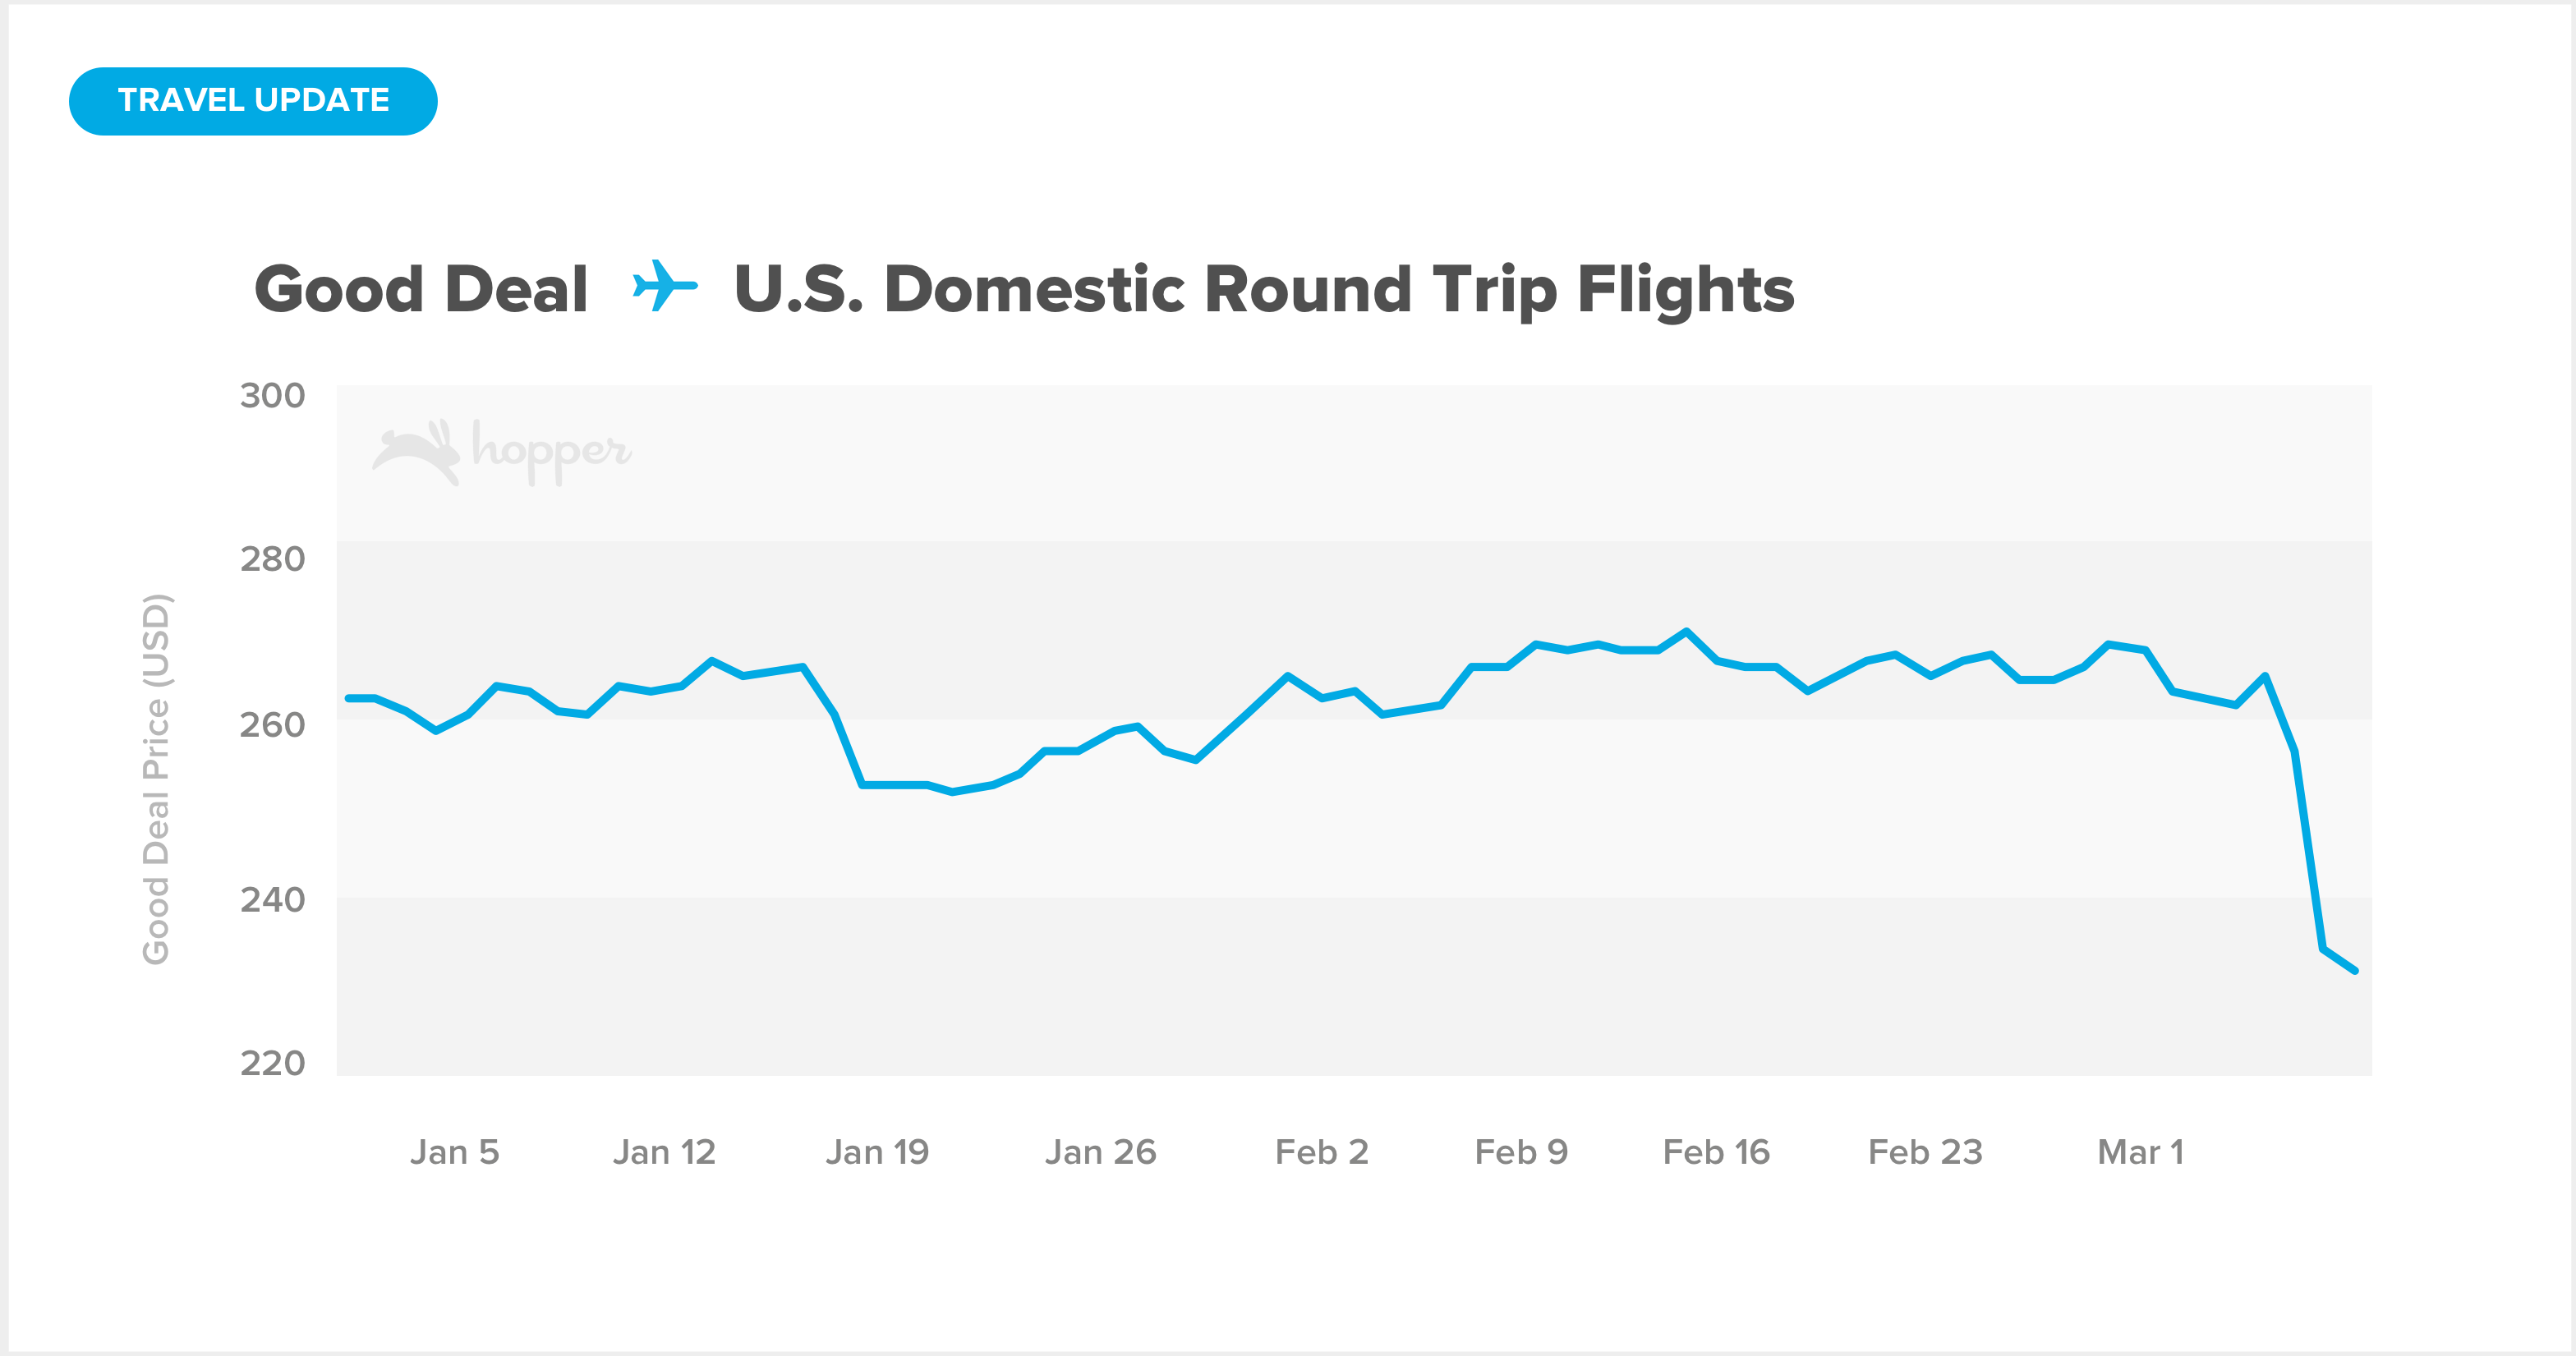 Average good deal price for a round trip ticket anywhere in the domestic US, showing a large drop between March 4th and March 7th, 2020.